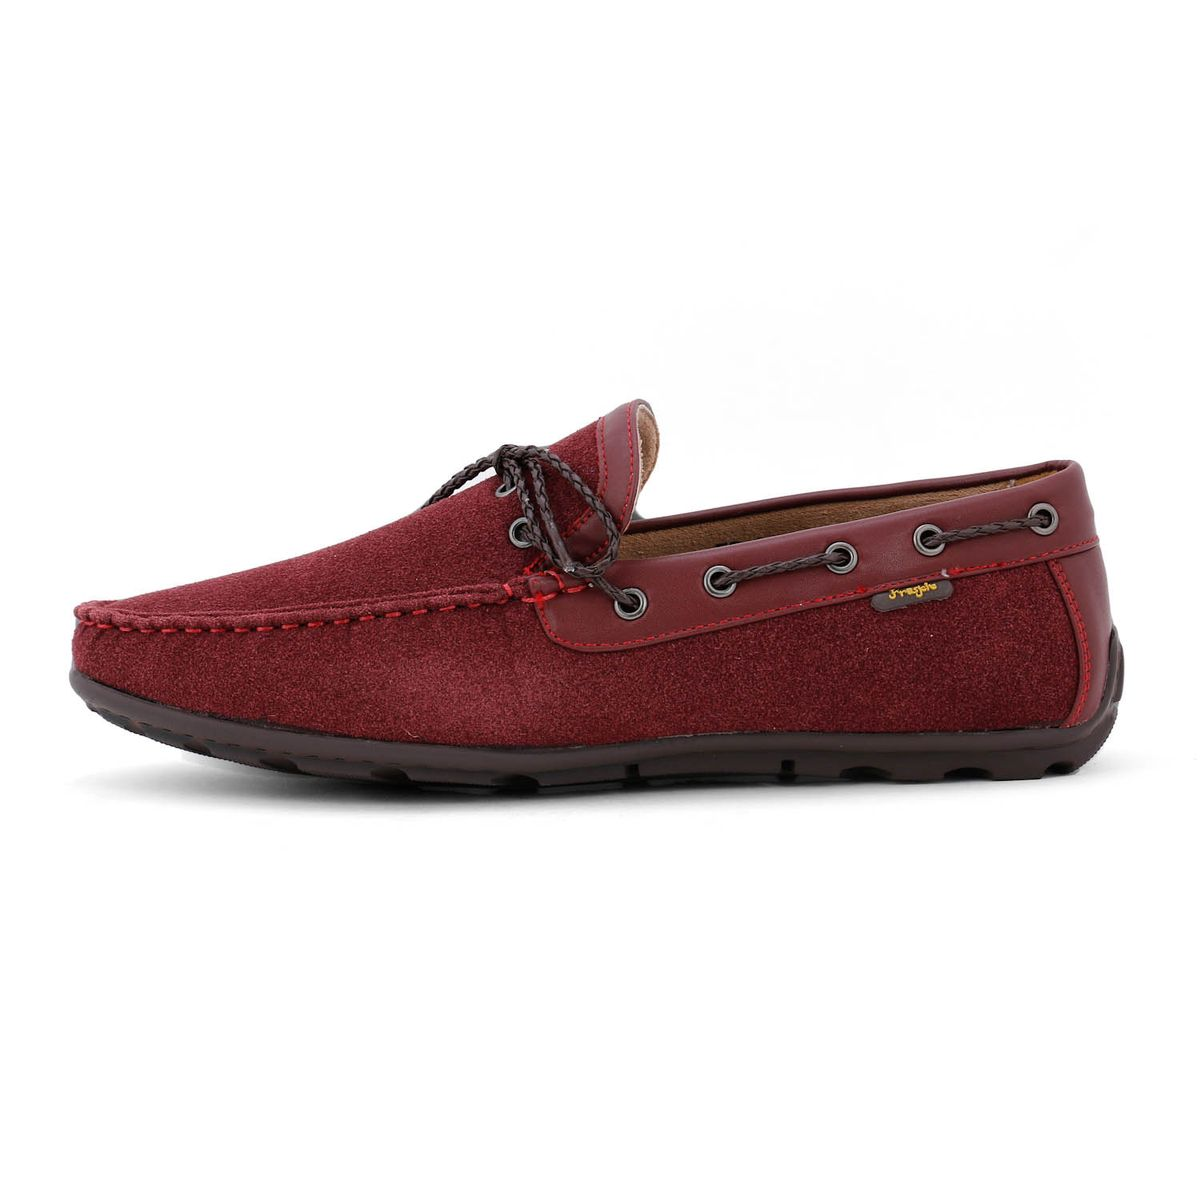 Froskie Casual Smart Party Wear Burgundy Loafers FR-011-Burgundy